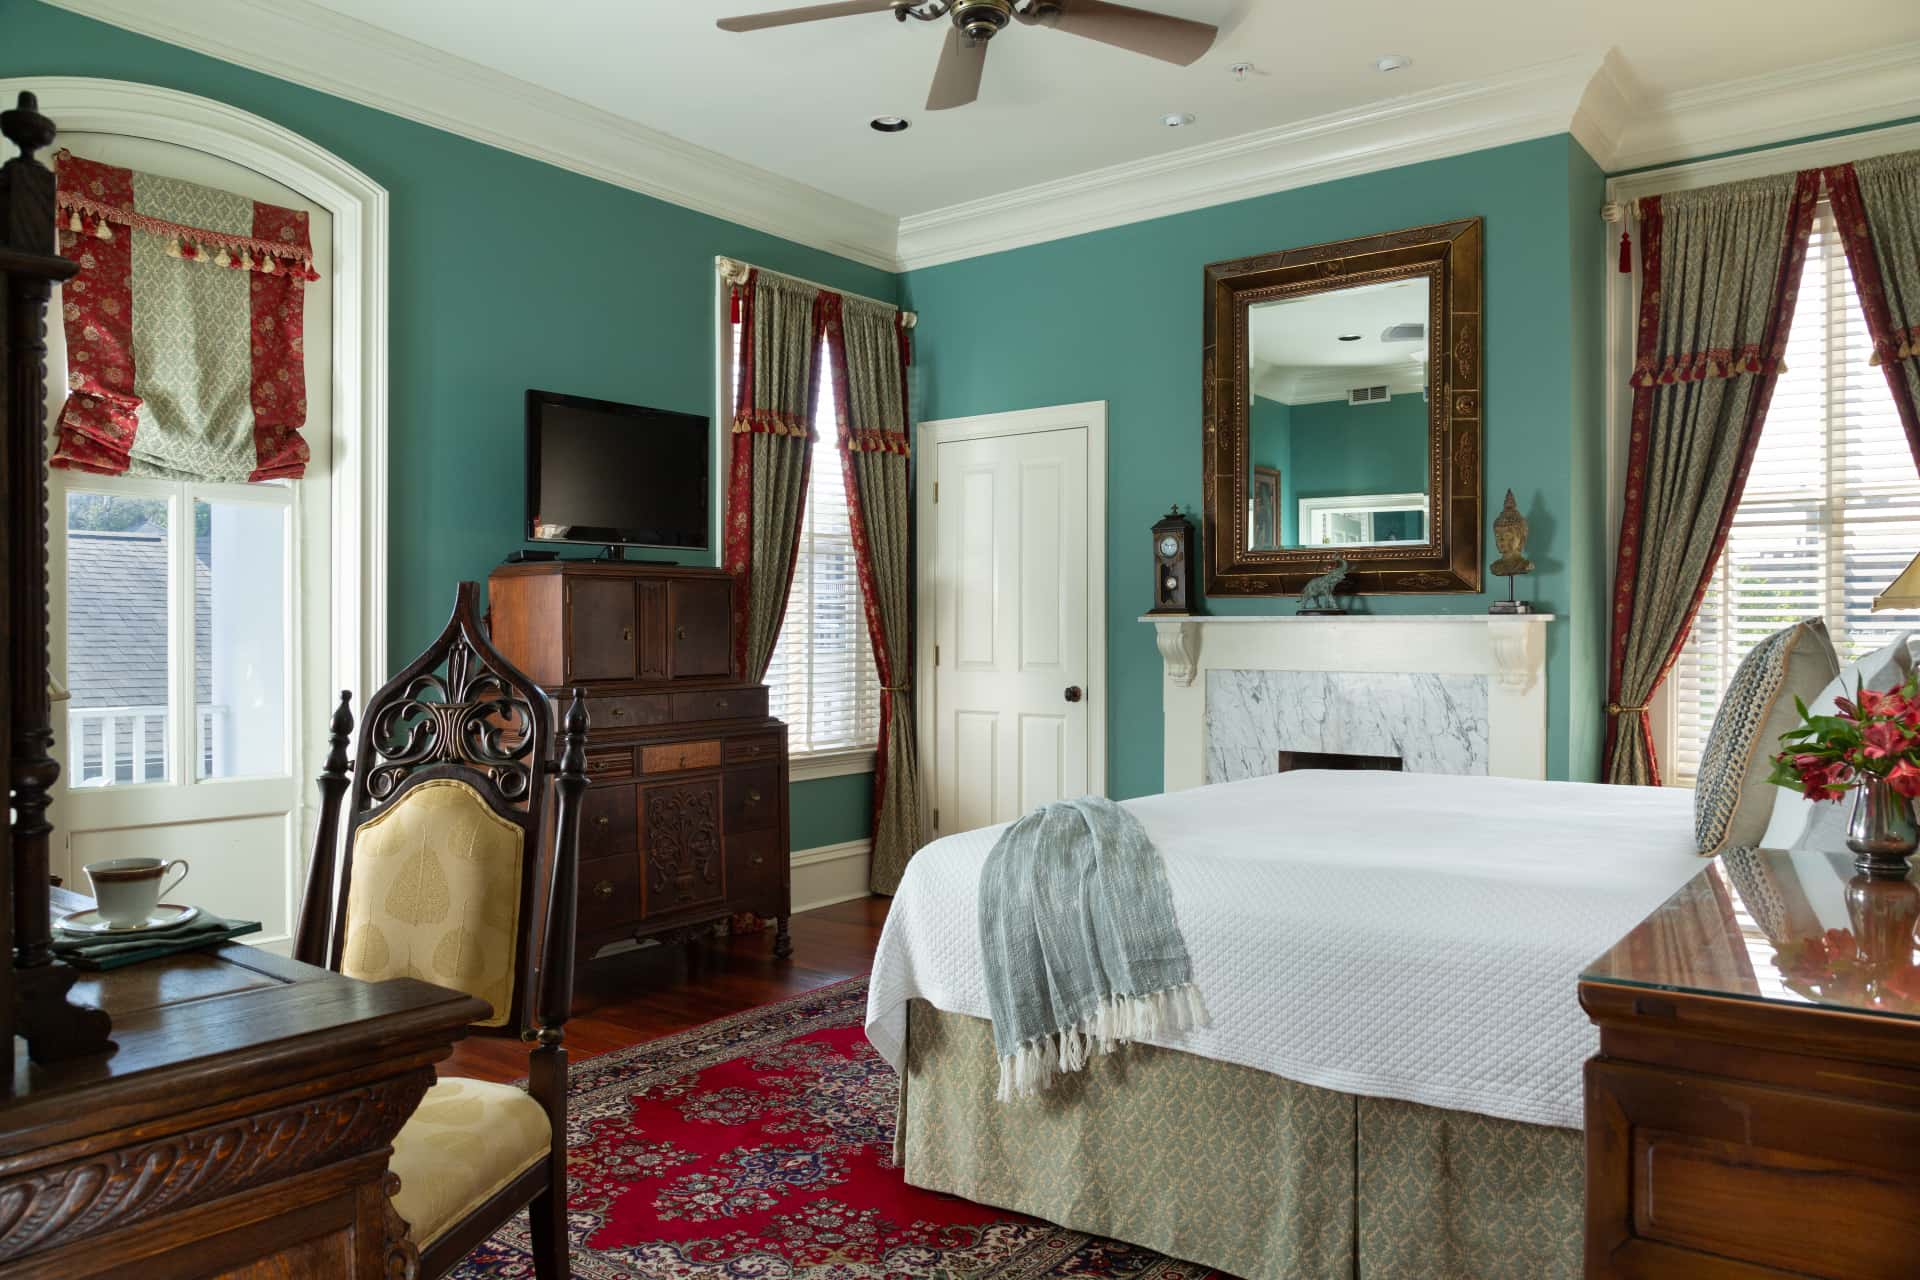 luxurious room at Savannah bed and breakfast